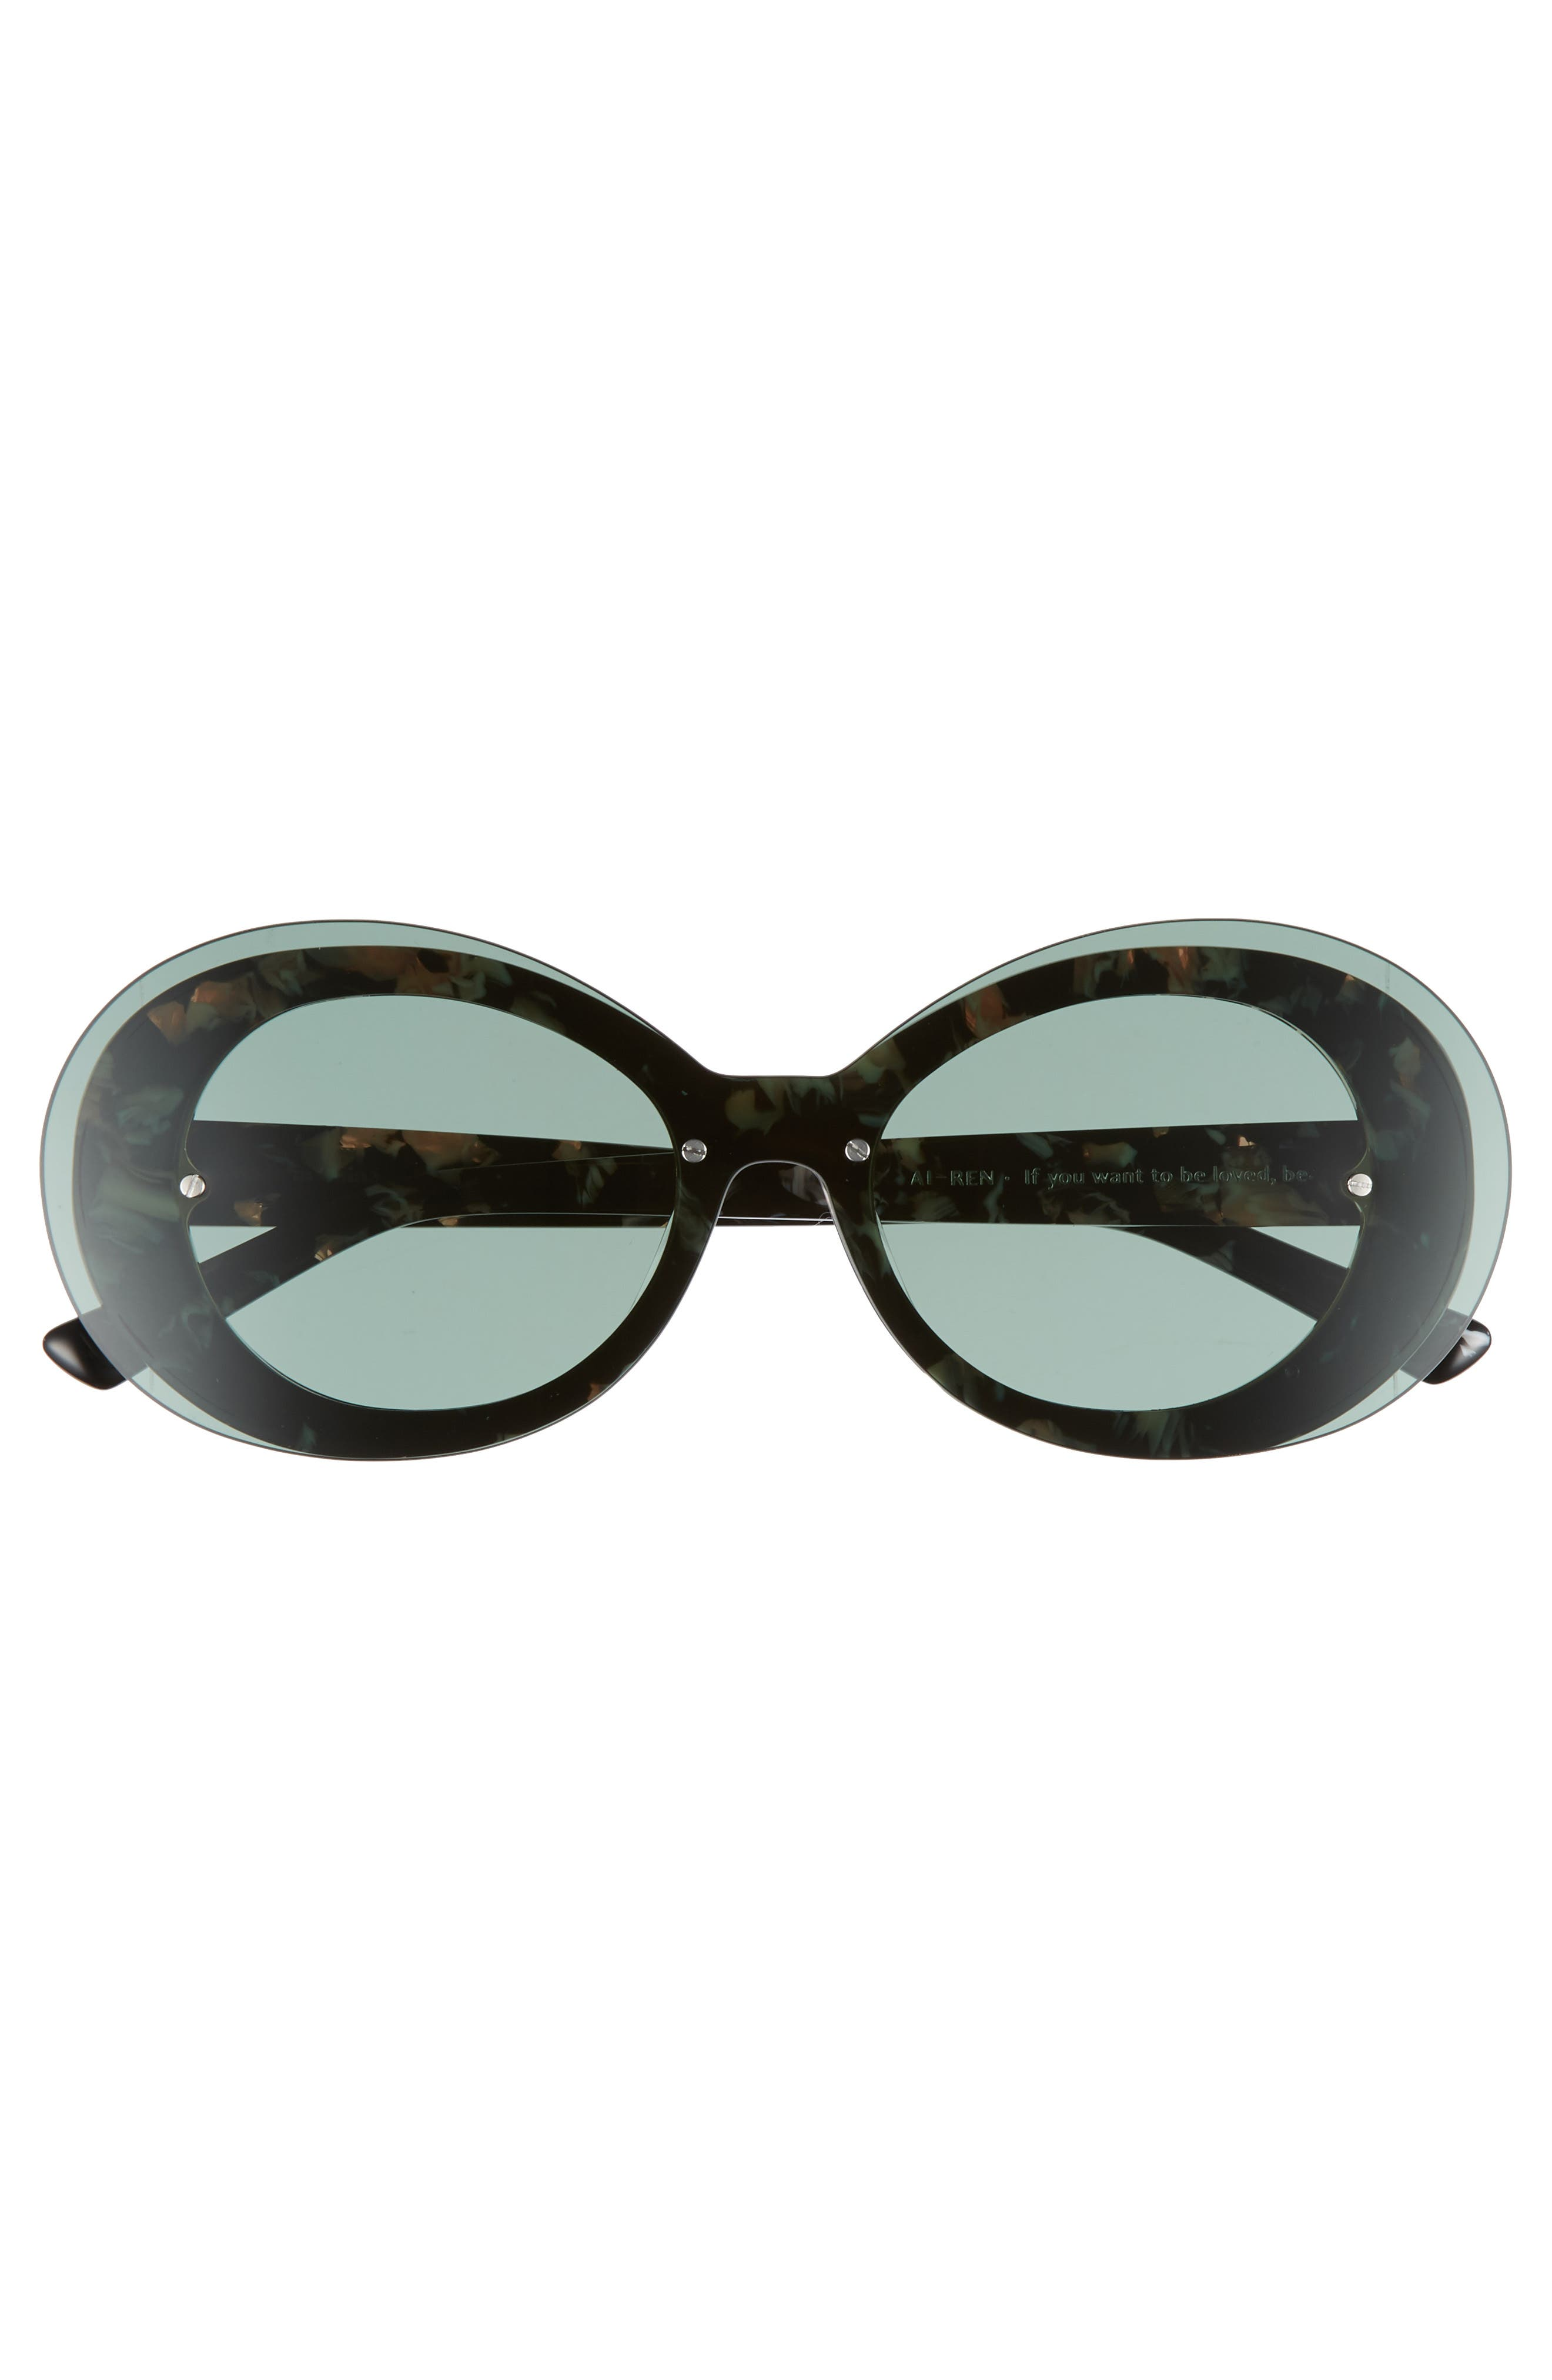 Ai-Ren 51mm Round Sunglasses,                             Alternate thumbnail 3, color,                             Marbled Olive